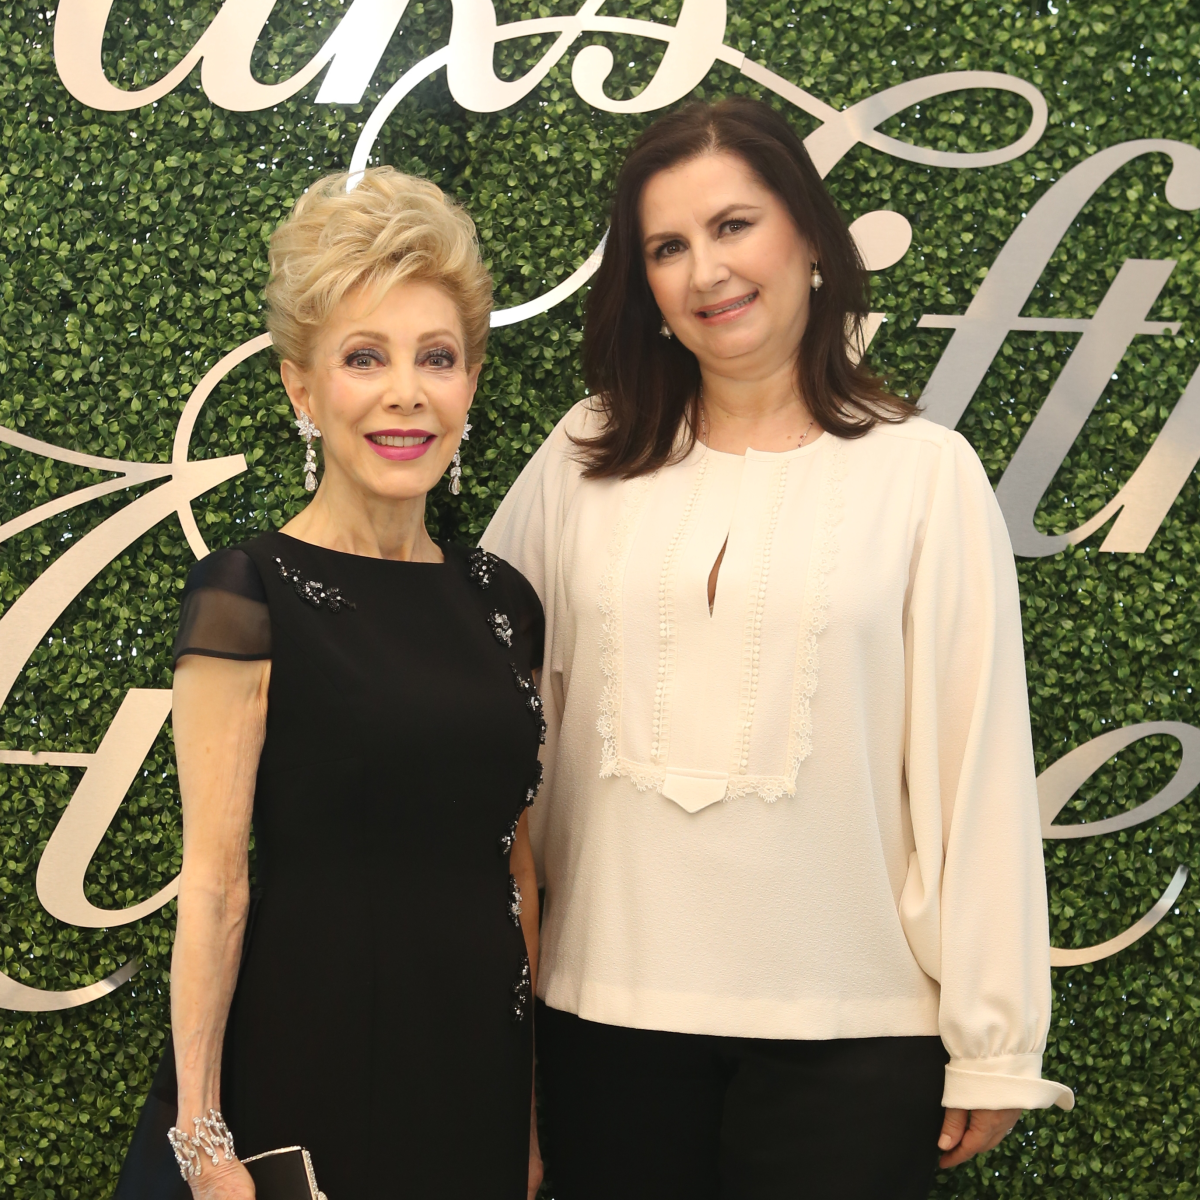 Saks MD Anderson benefit 4/16, Margaret Alkek Williams, Sylvia Forsythe